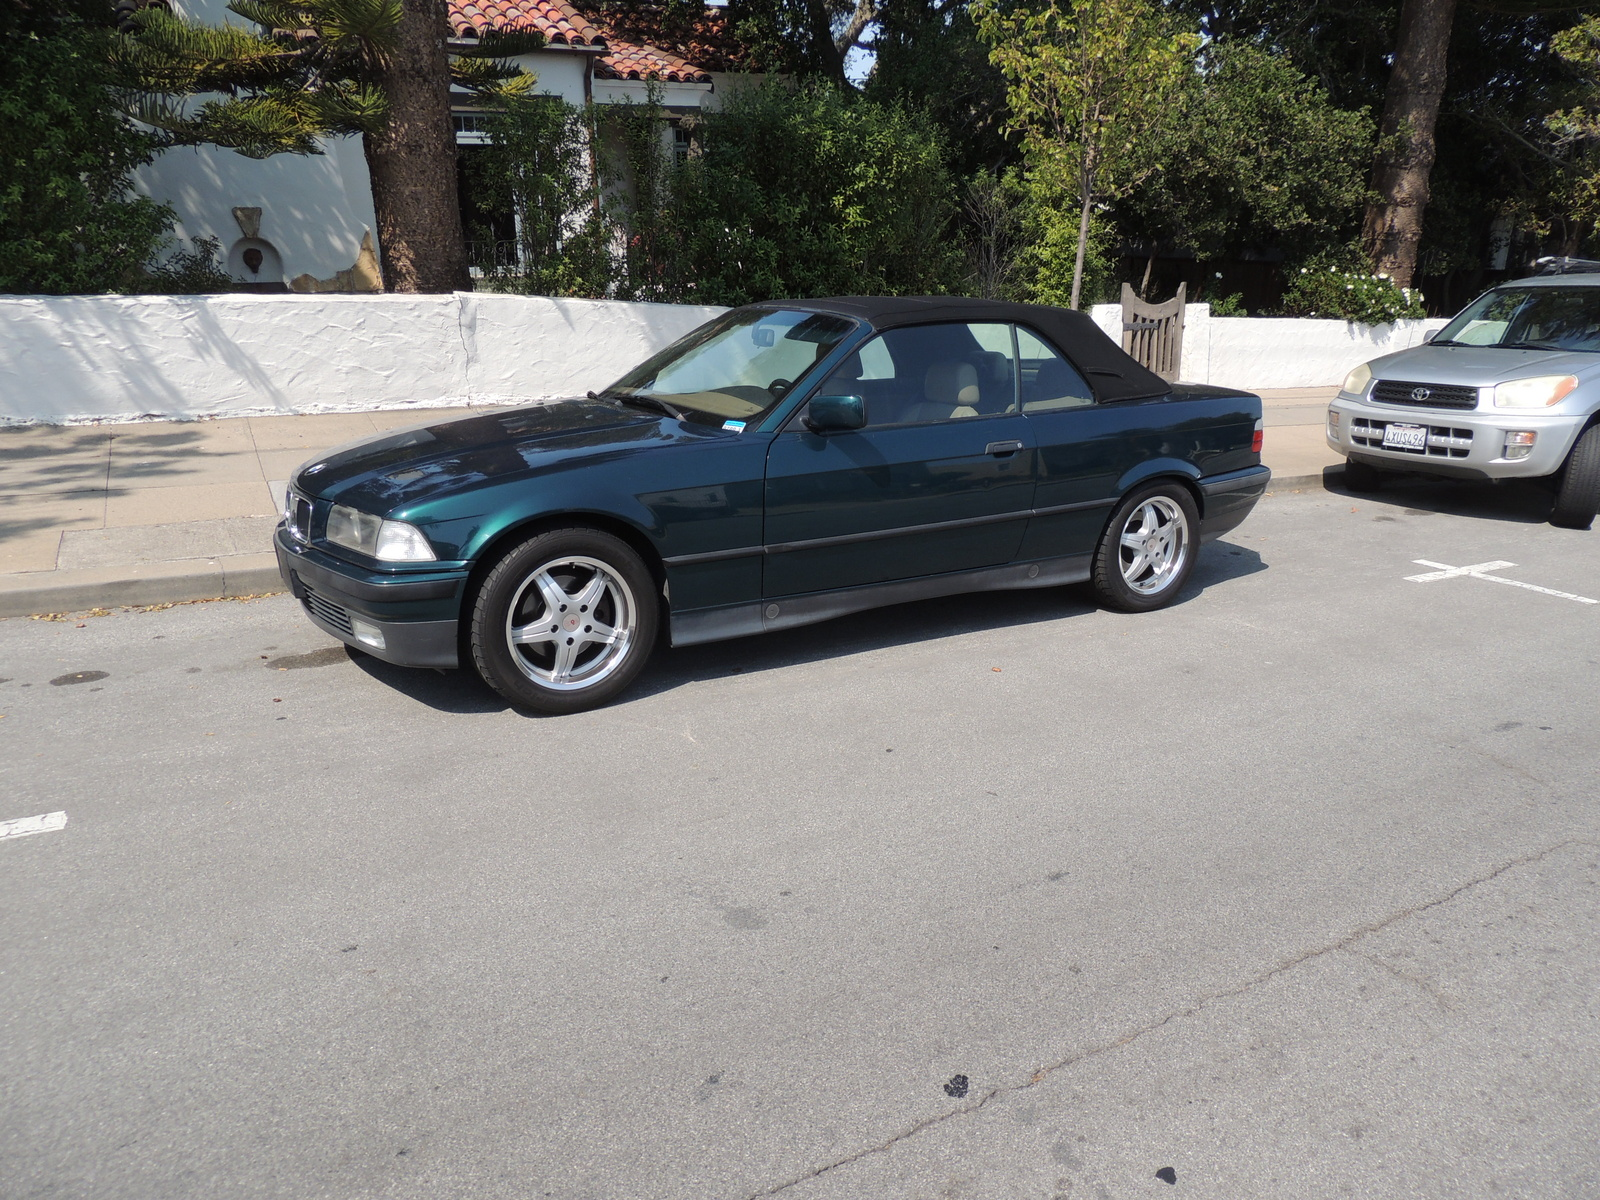 BMW 3 series 325i 1994 photo - 12